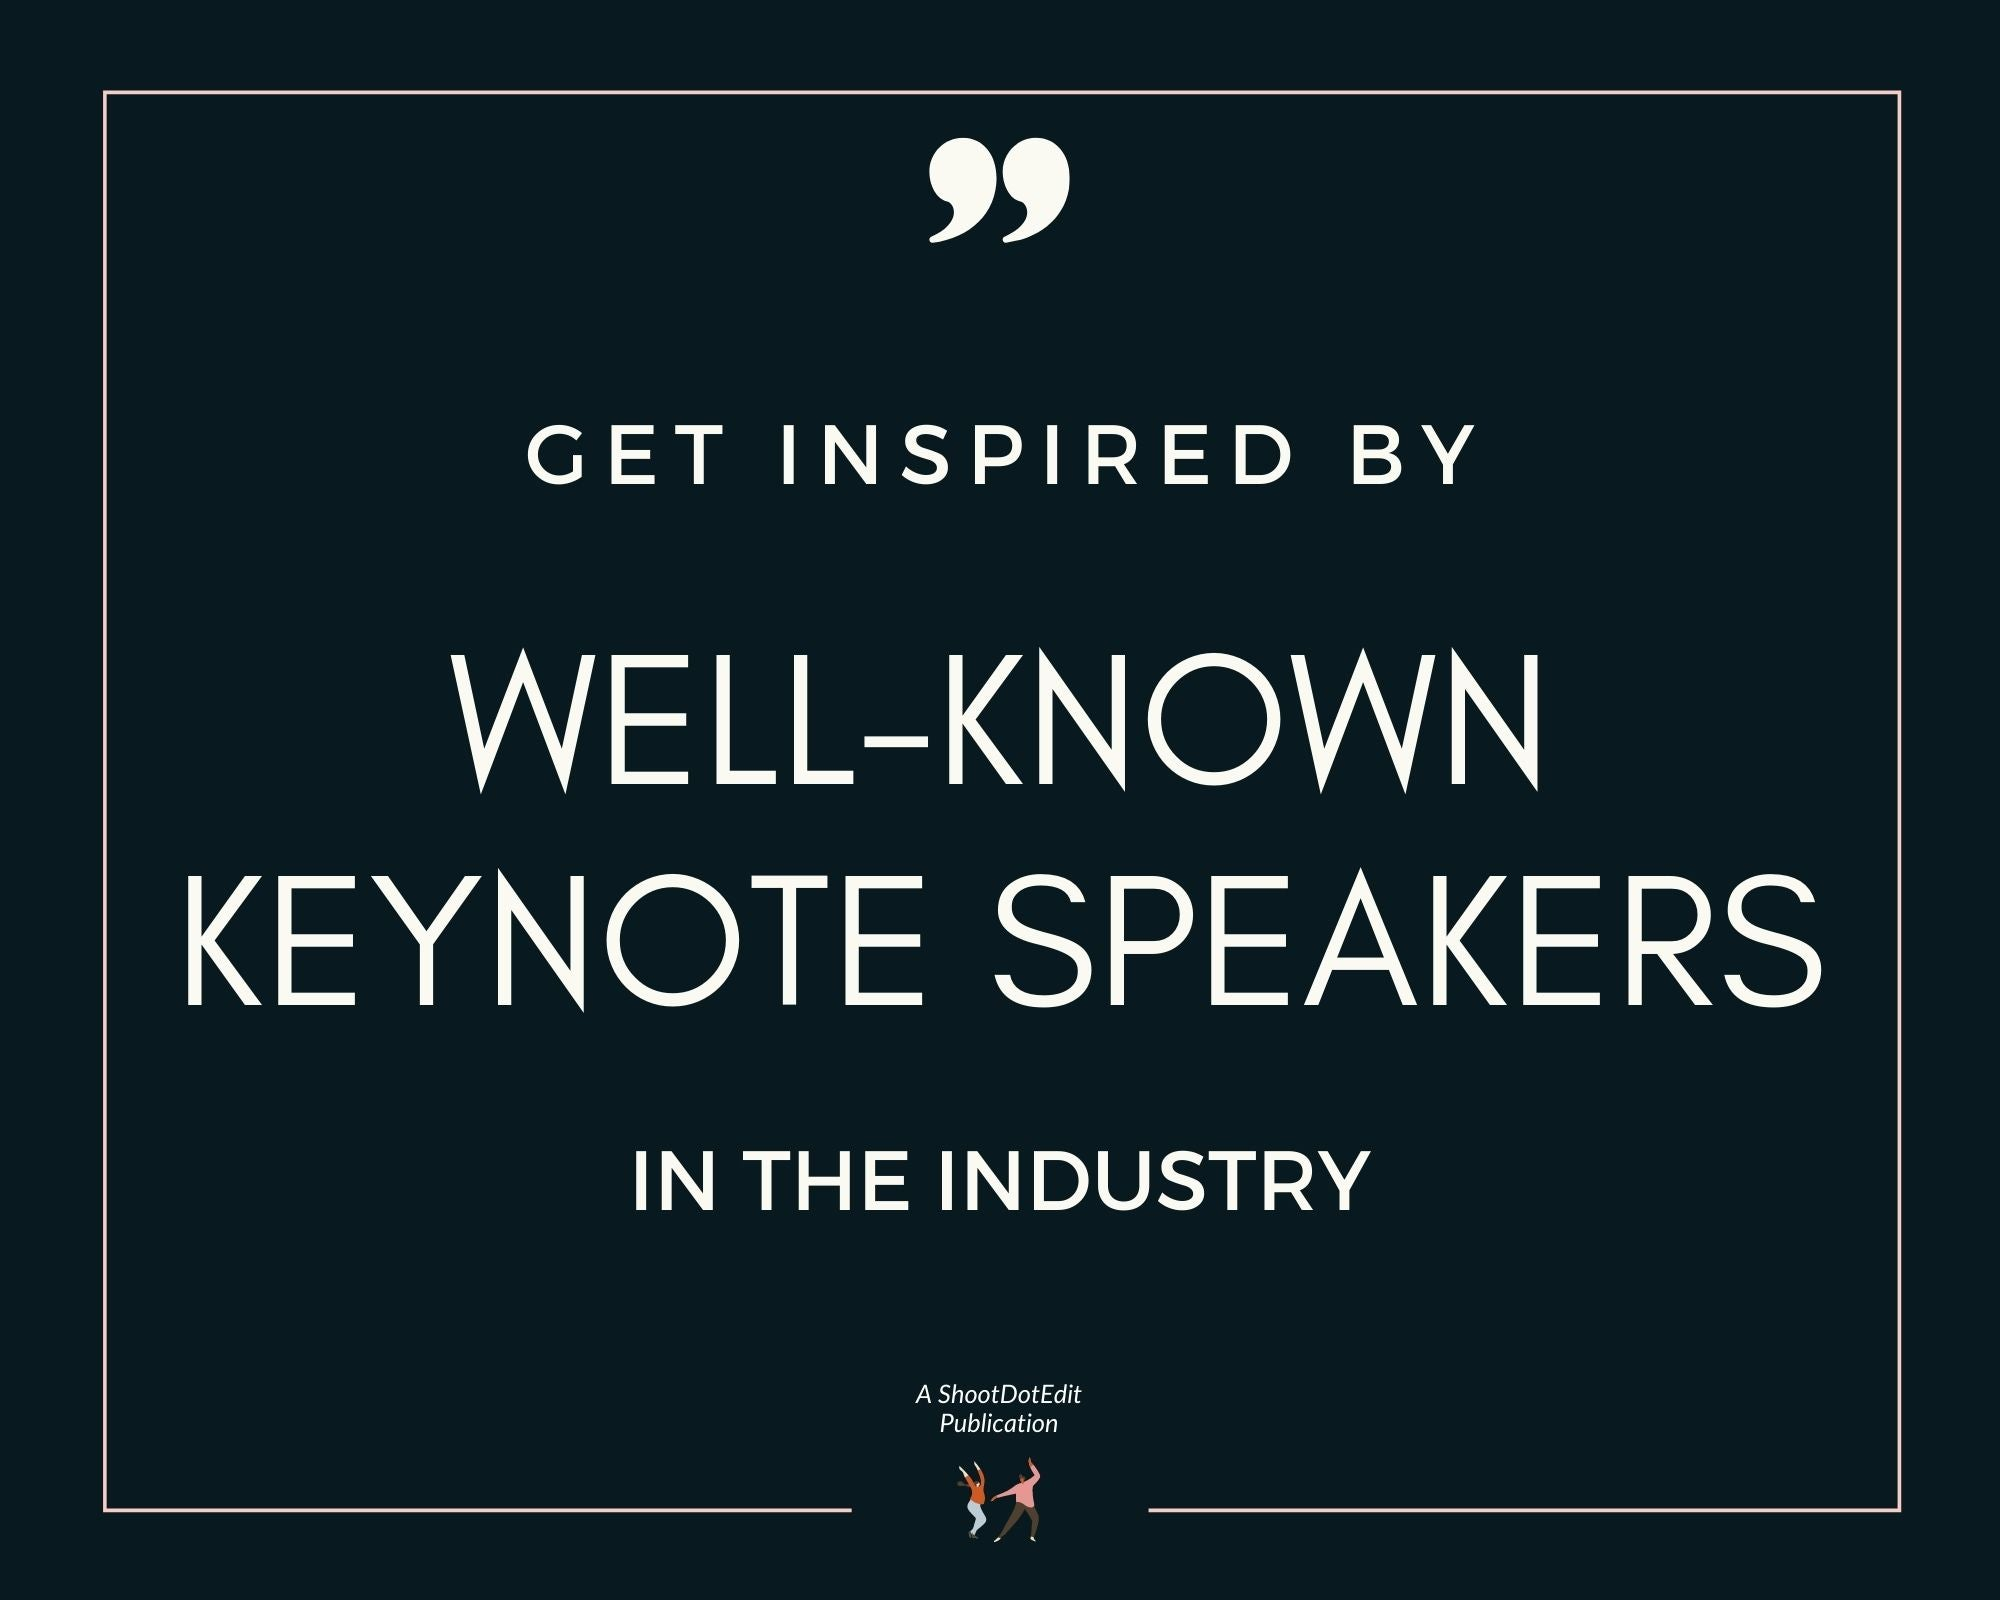 Infographic stating get inspired by well-known keynote speakers in the industry